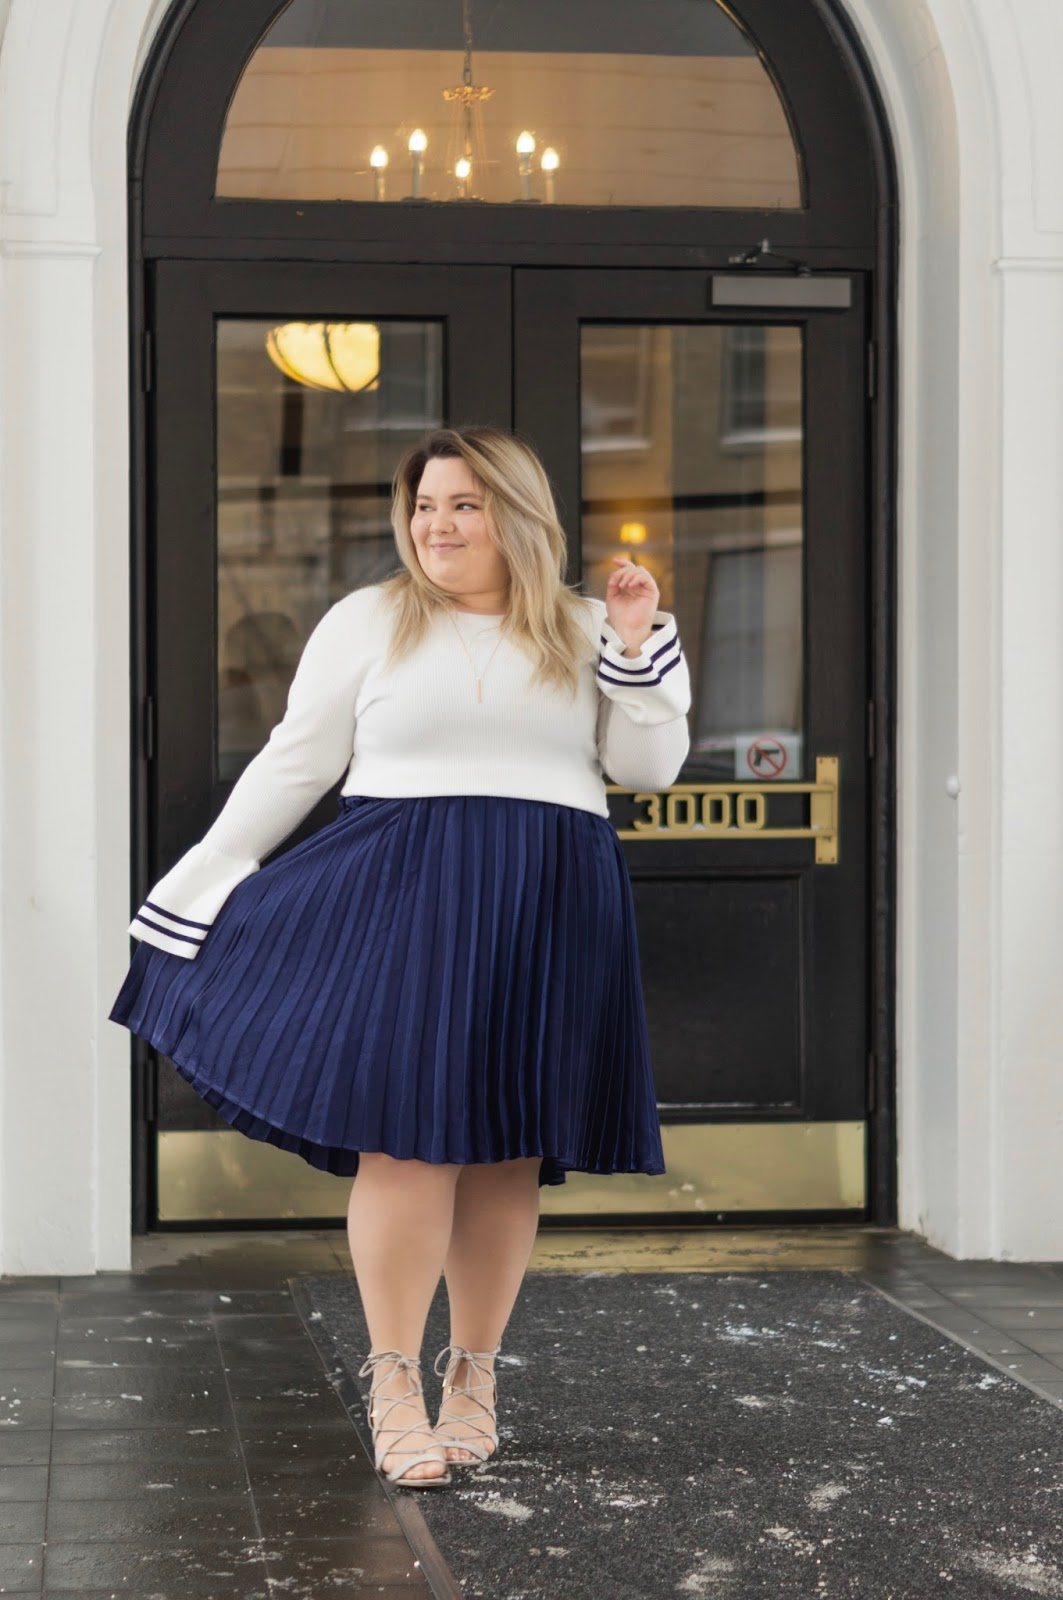 full figured fashion, natalie Craig, natalie in the city, plus size fashion blogger, Chicago plus size fashion blogger, embrace your curves, eff your beauty standards, plus size pleated midi skirt, bell sleeve sweater, affordable plus size clothing, eloquii, eloquii Chicago location